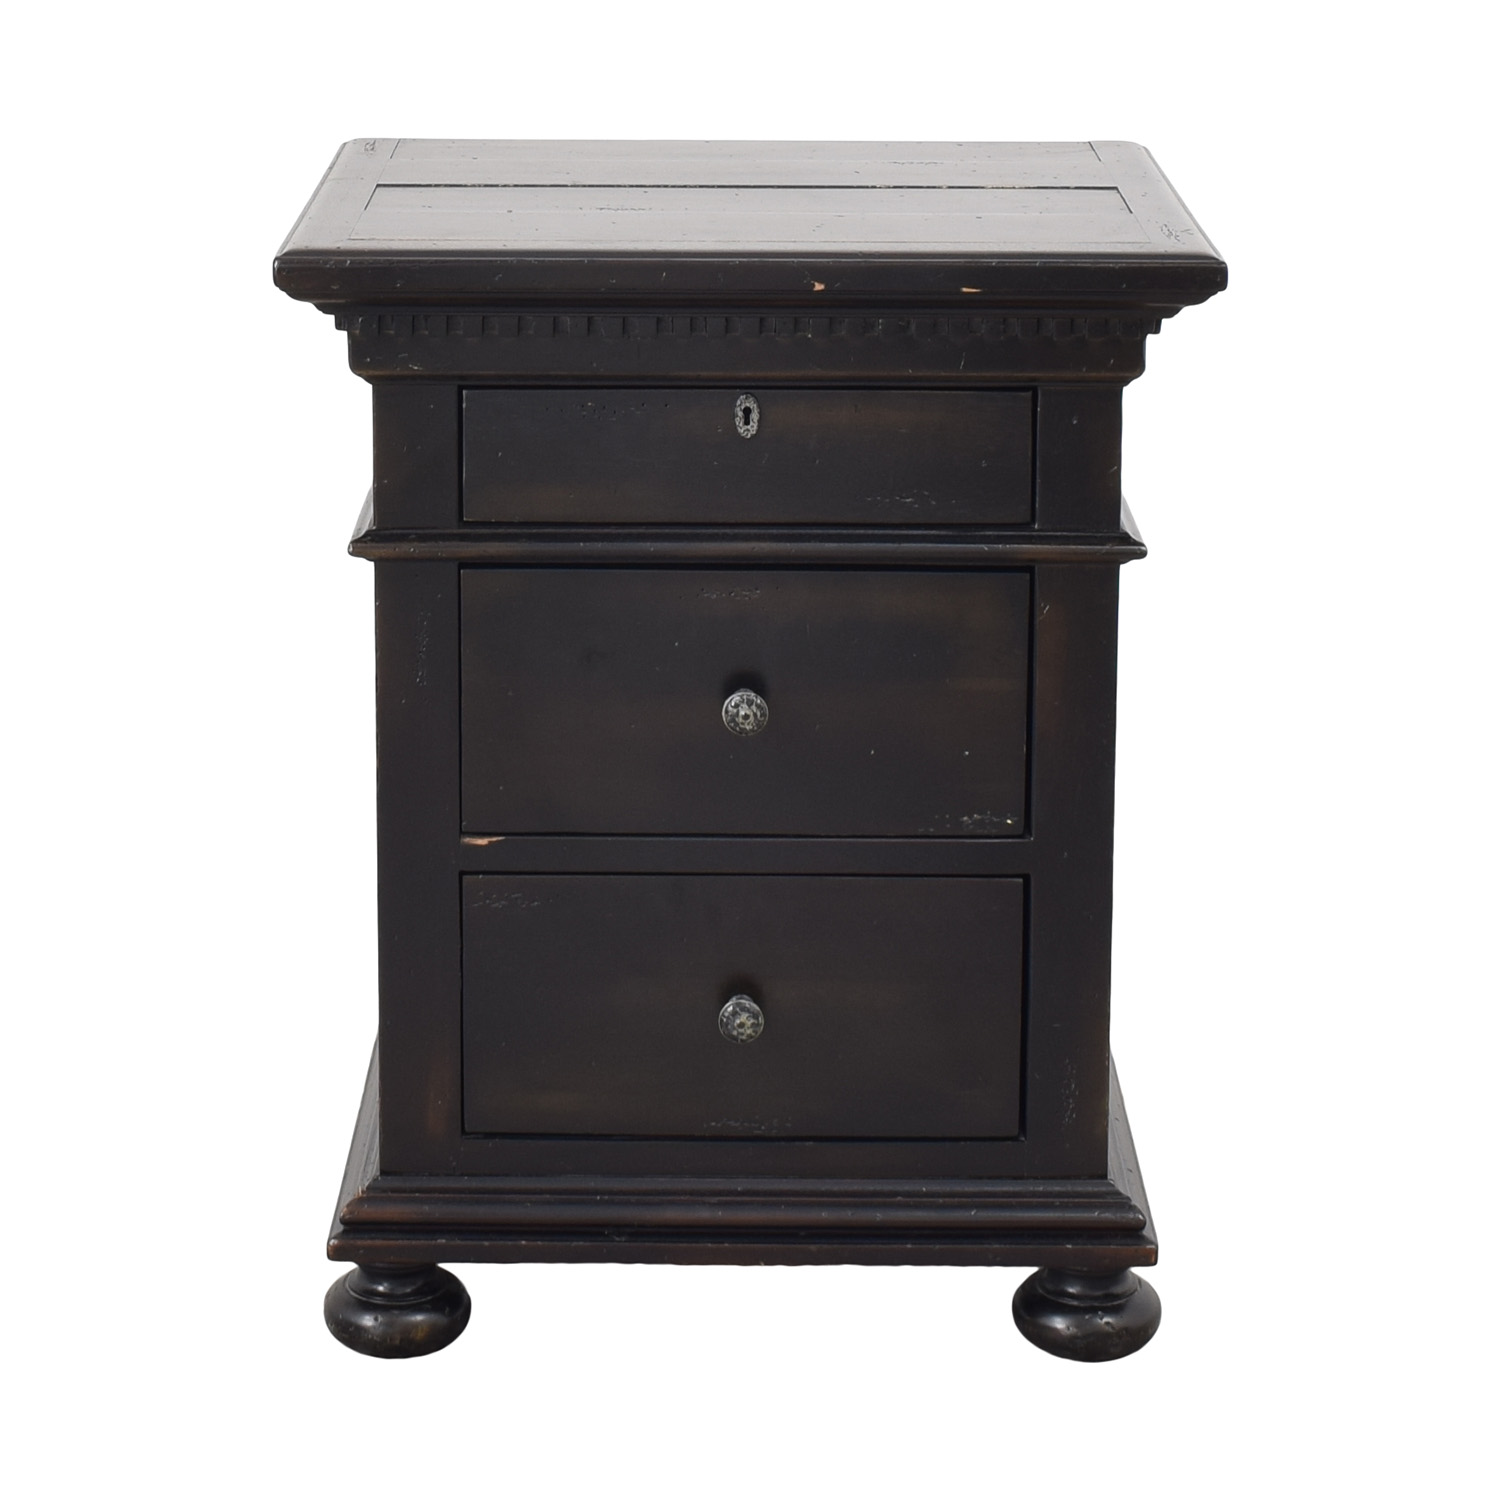 Restoration Hardware Restoration Hardware St. James Closed Nightstand used